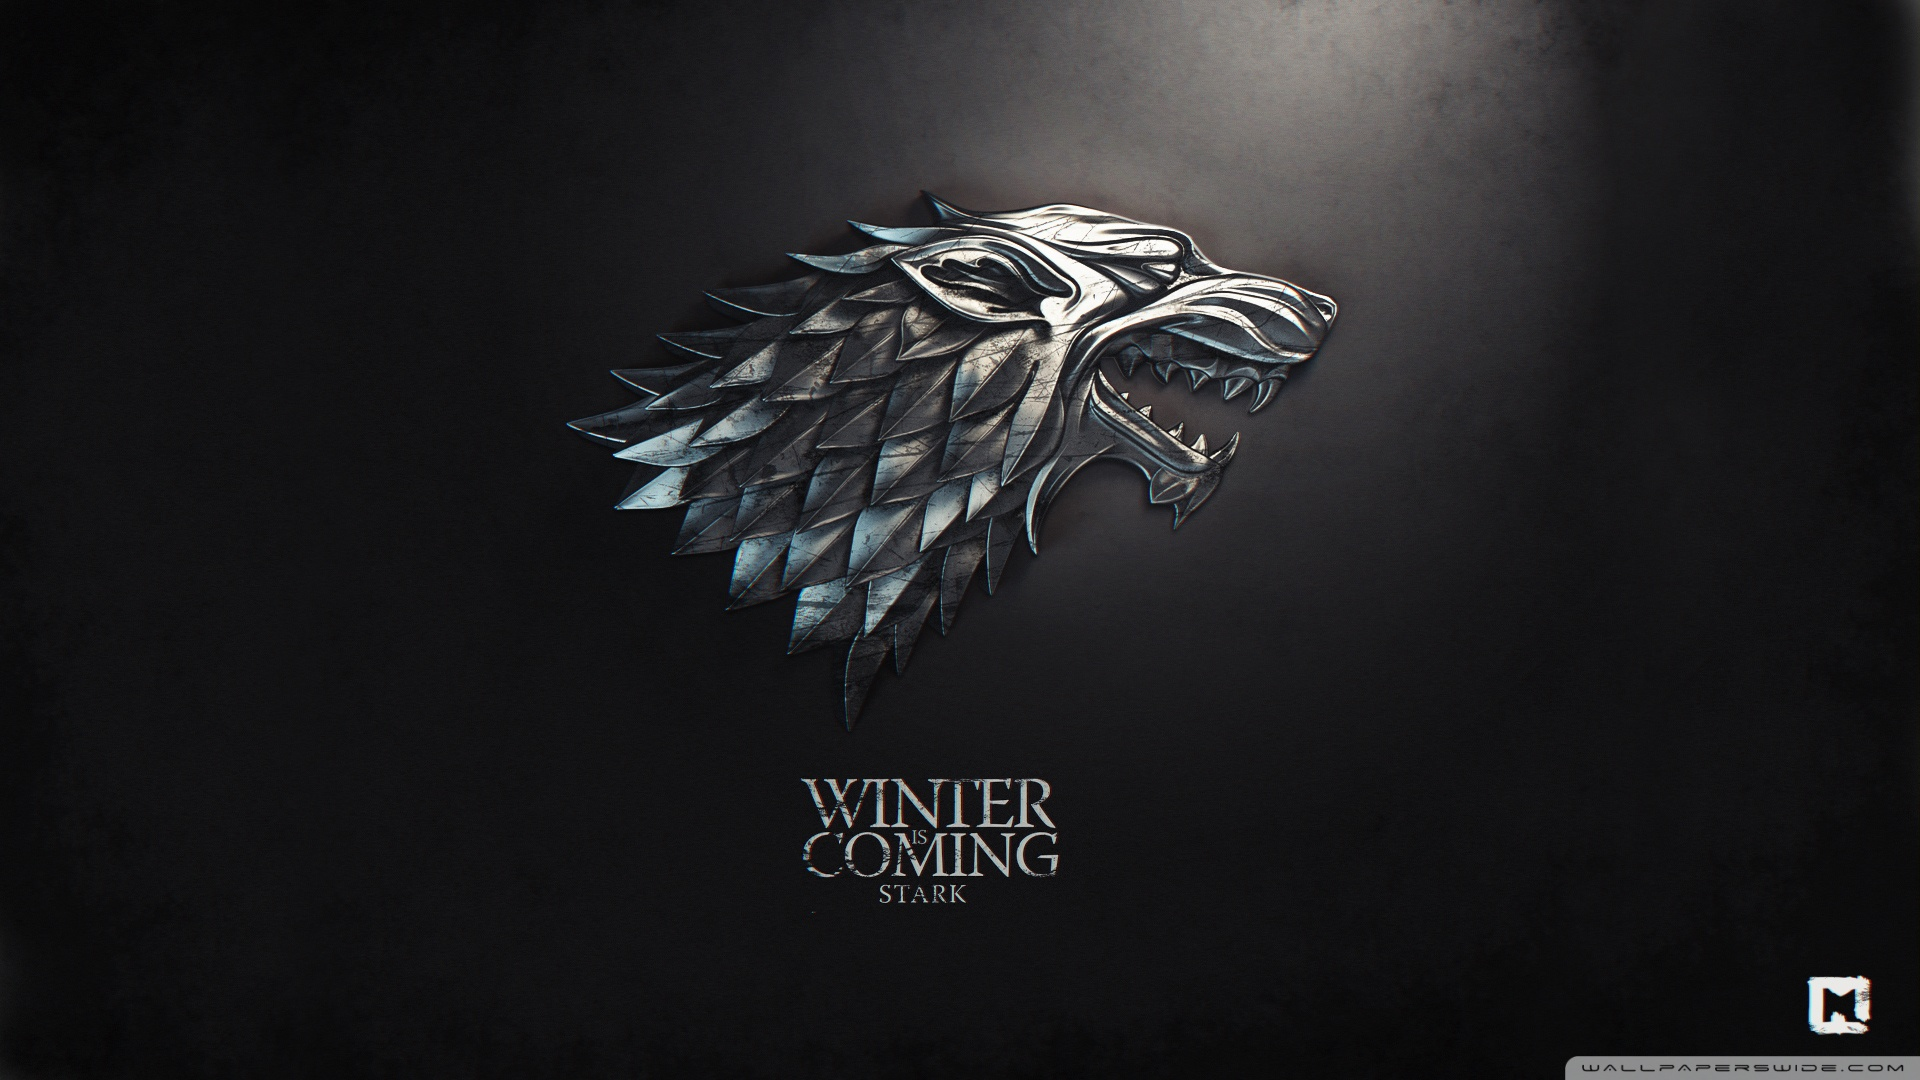 WallpapersWidecom Game of Thrones HD Desktop Wallpapers for 4K 1920x1080